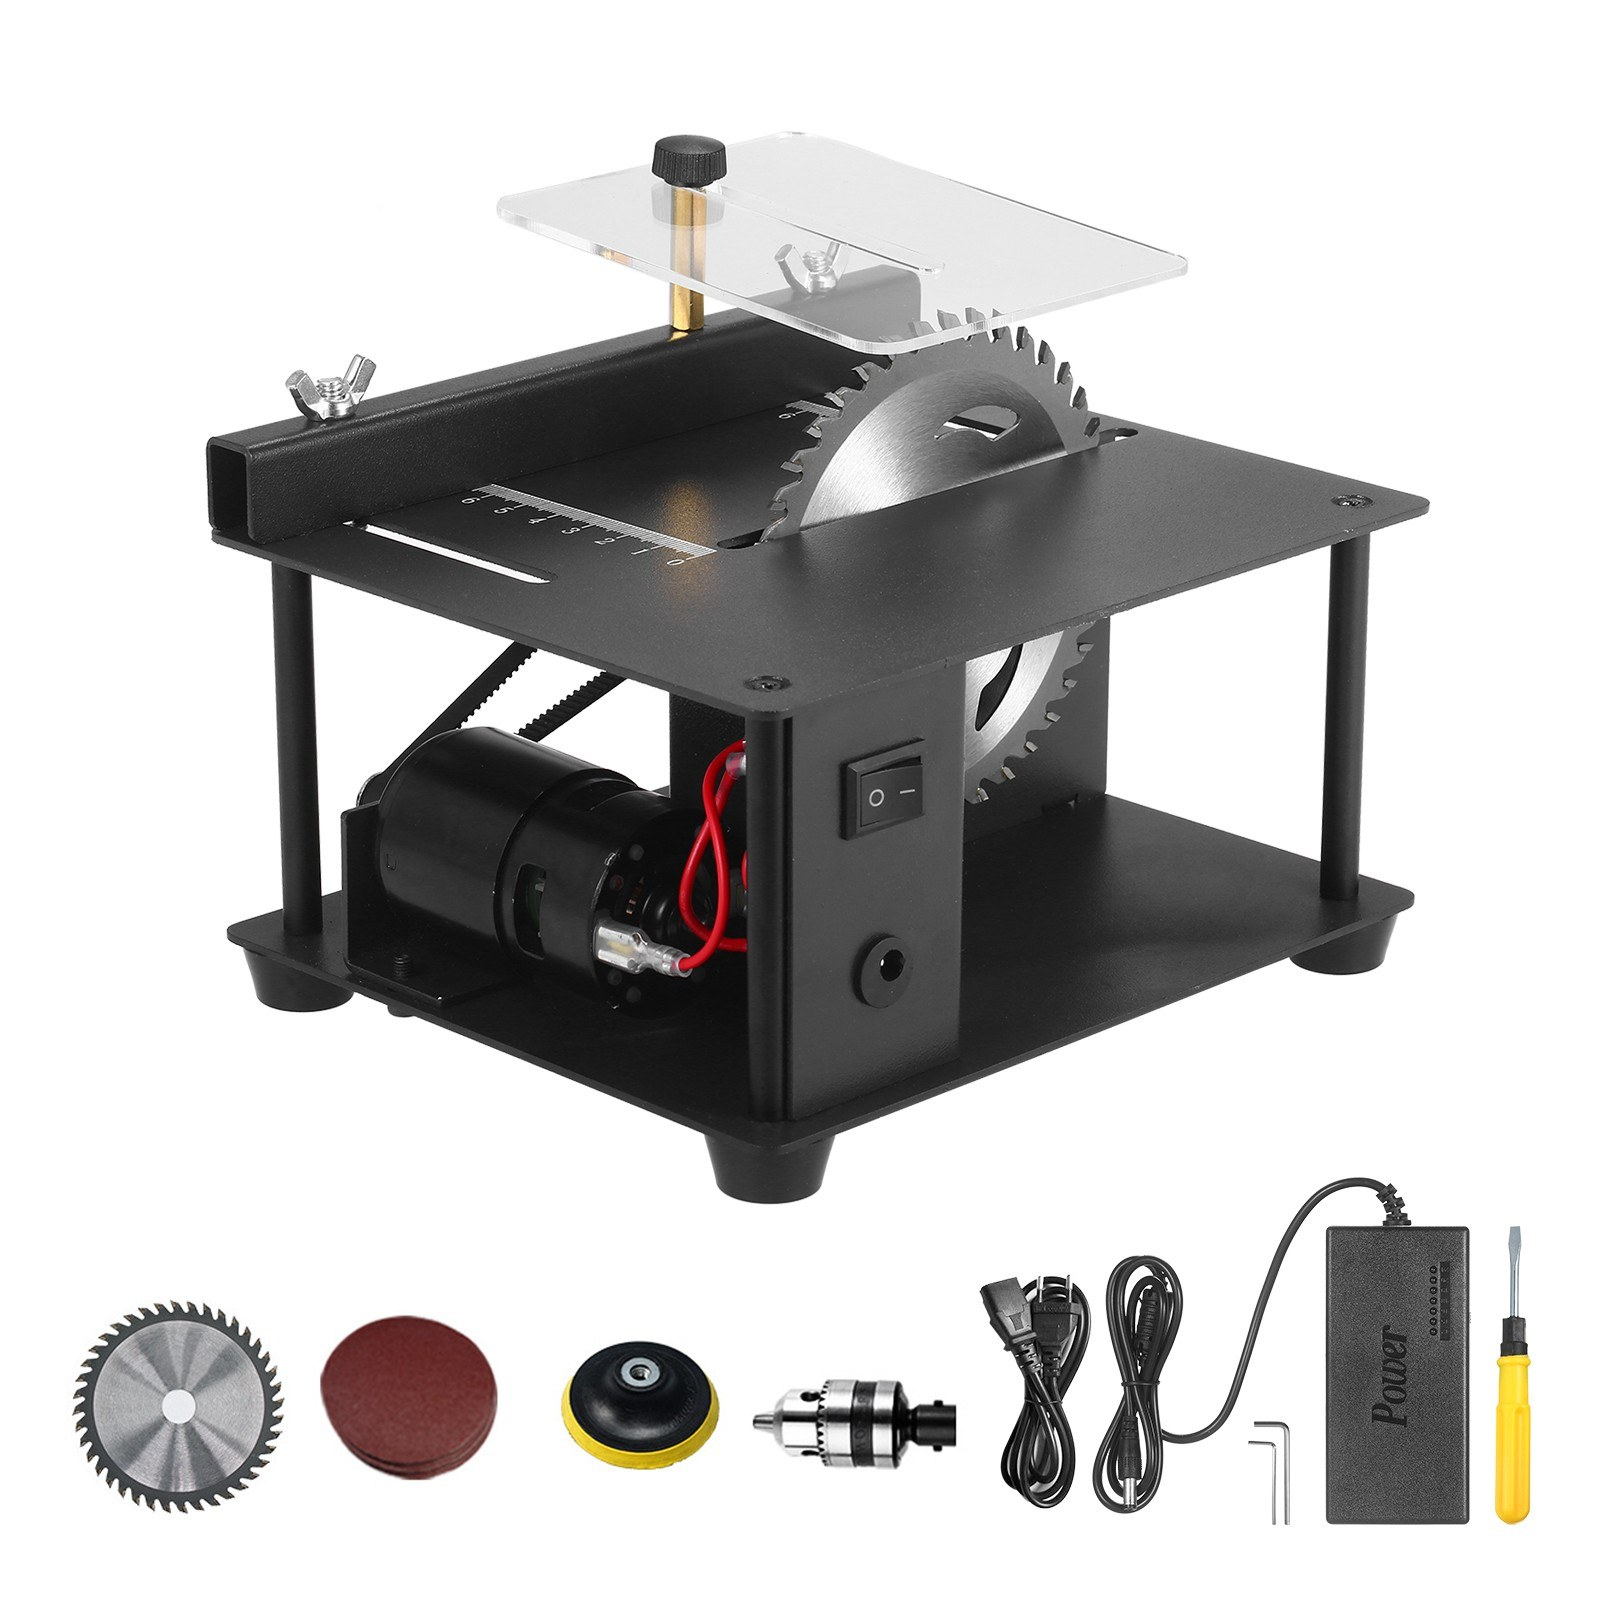 Tomtop - 38% OFF Multi-Functional Table Saw Mini Desktop, Free Shipping $85.49